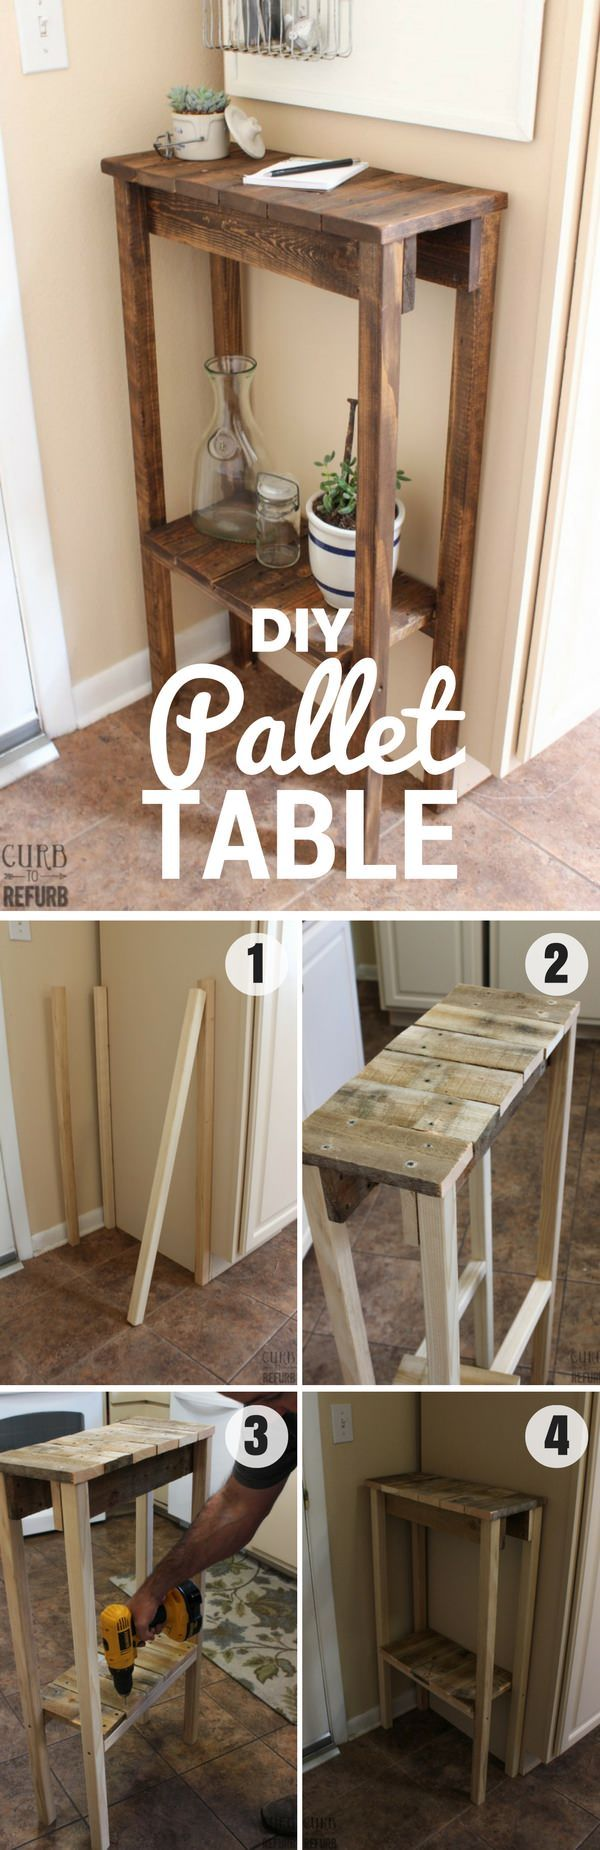 Weve Picked 15 Amazing But Still Easy DIY Wood Craft Projects For Home Decor So That You Can Build Something Unique Yourself